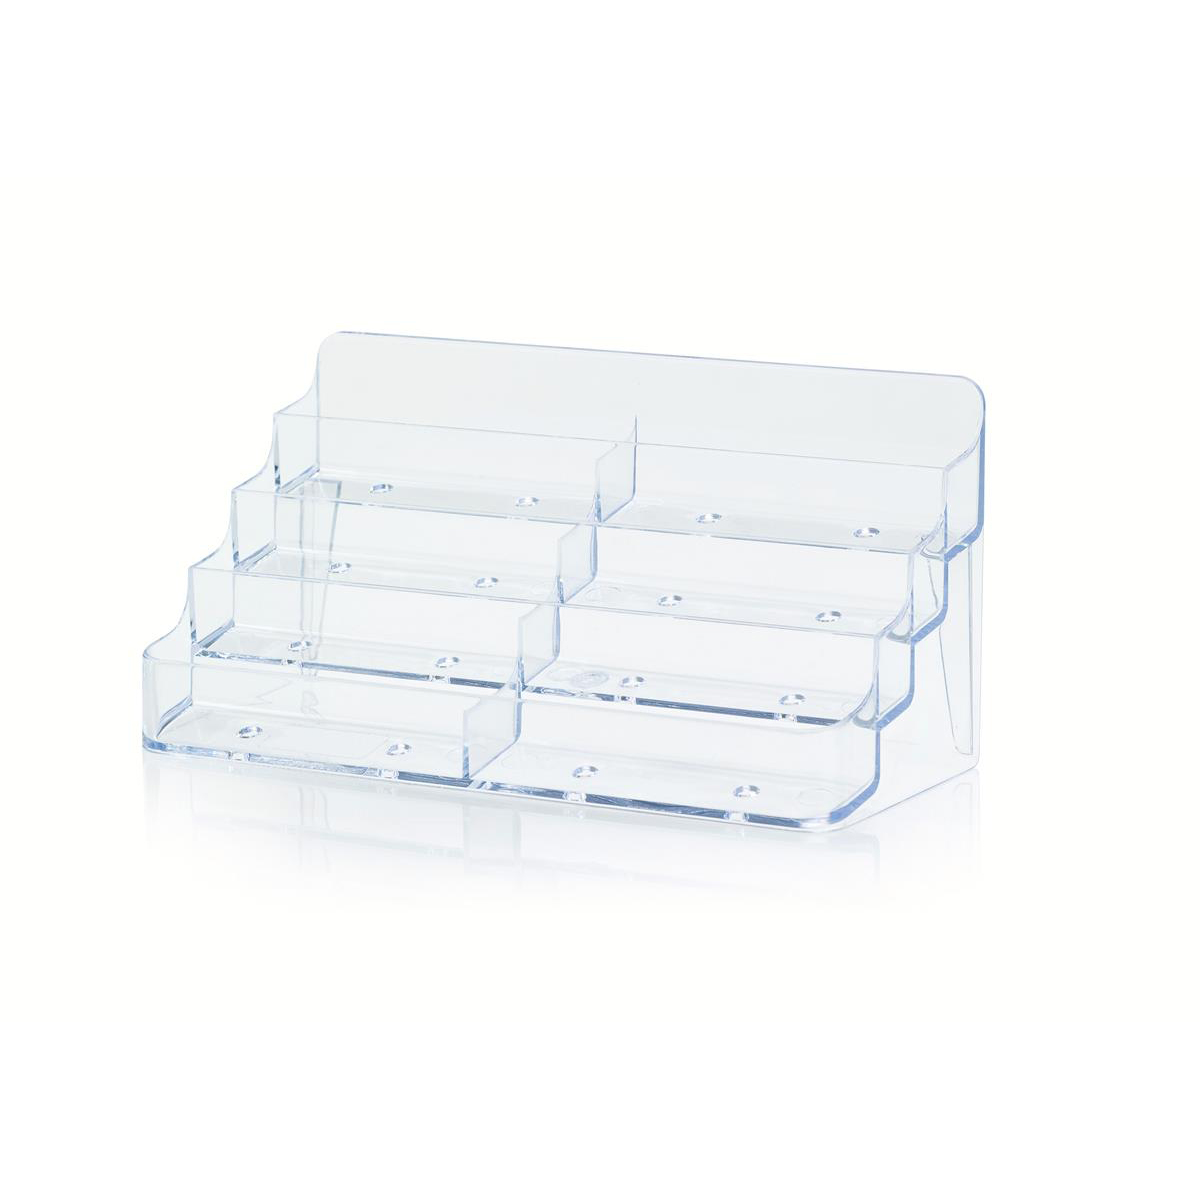 Business card holder desktop 8 pockets clear office things dublin business card holder desktop 8 pockets clear office things dublin ireland have the best pricing on office supplies furniture machines envelopes reheart Gallery